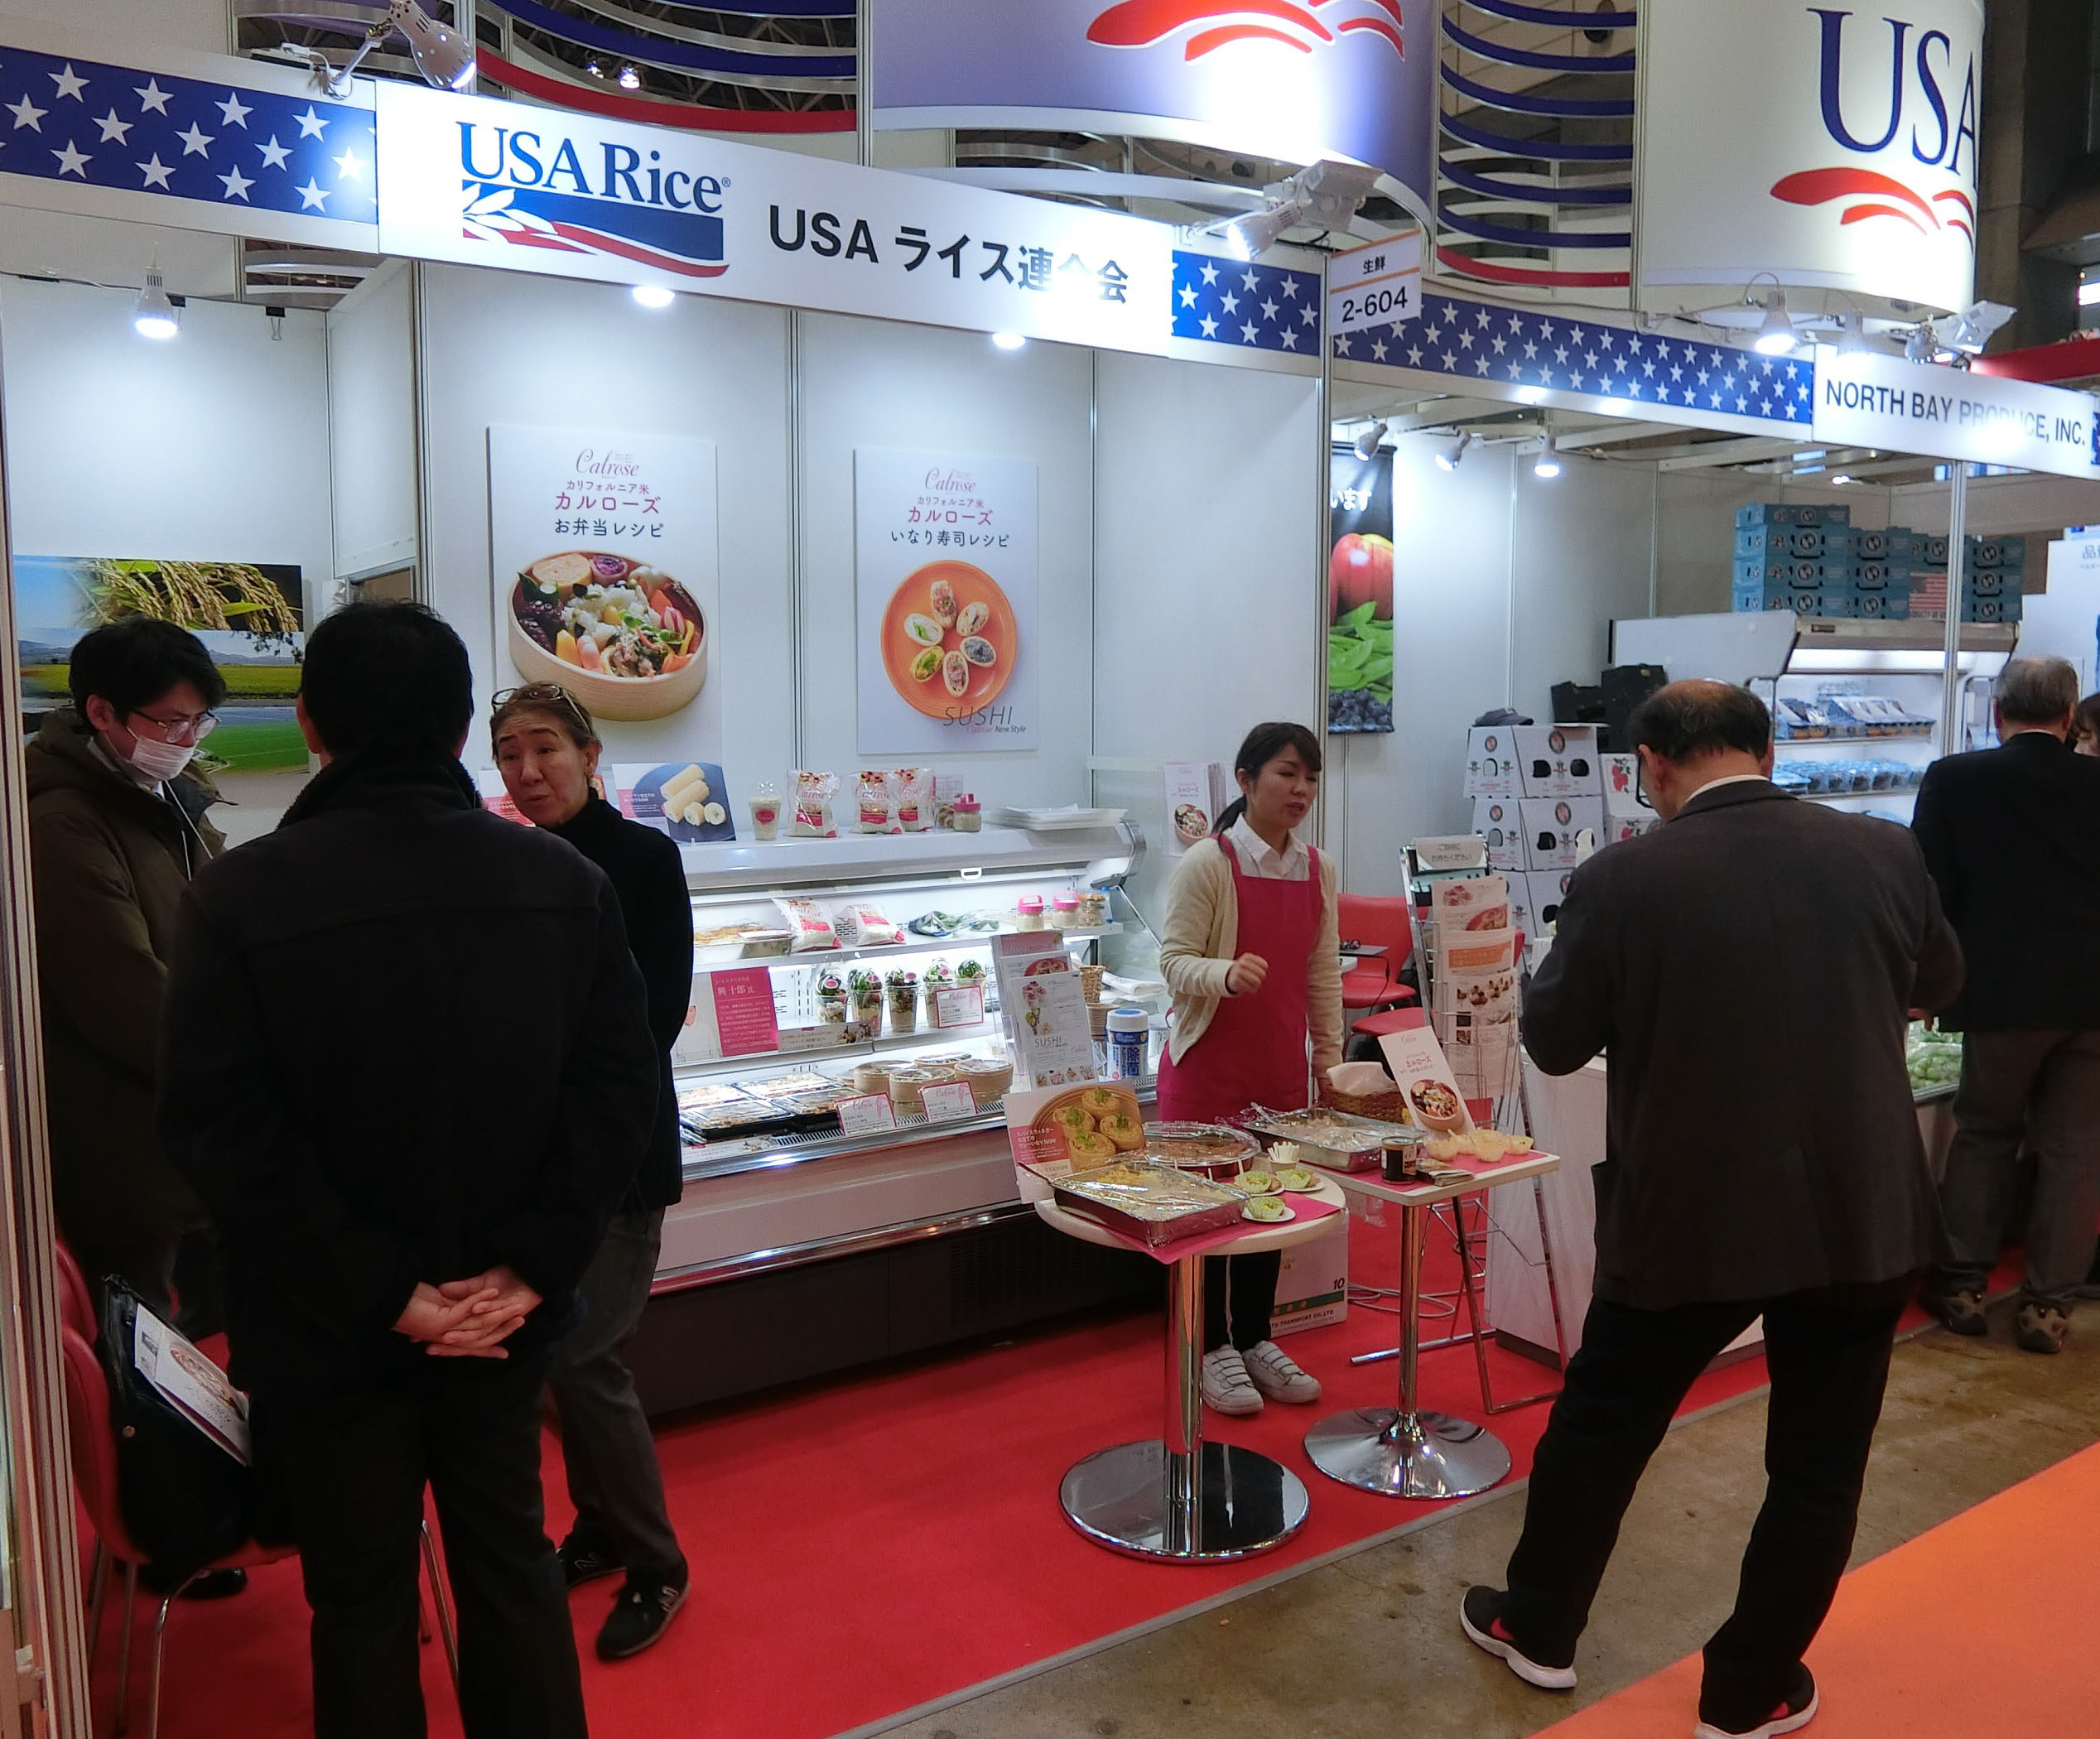 Trade show booth with people standing around talking, a woman wearing a red apron offers food samples to man wearing black suit